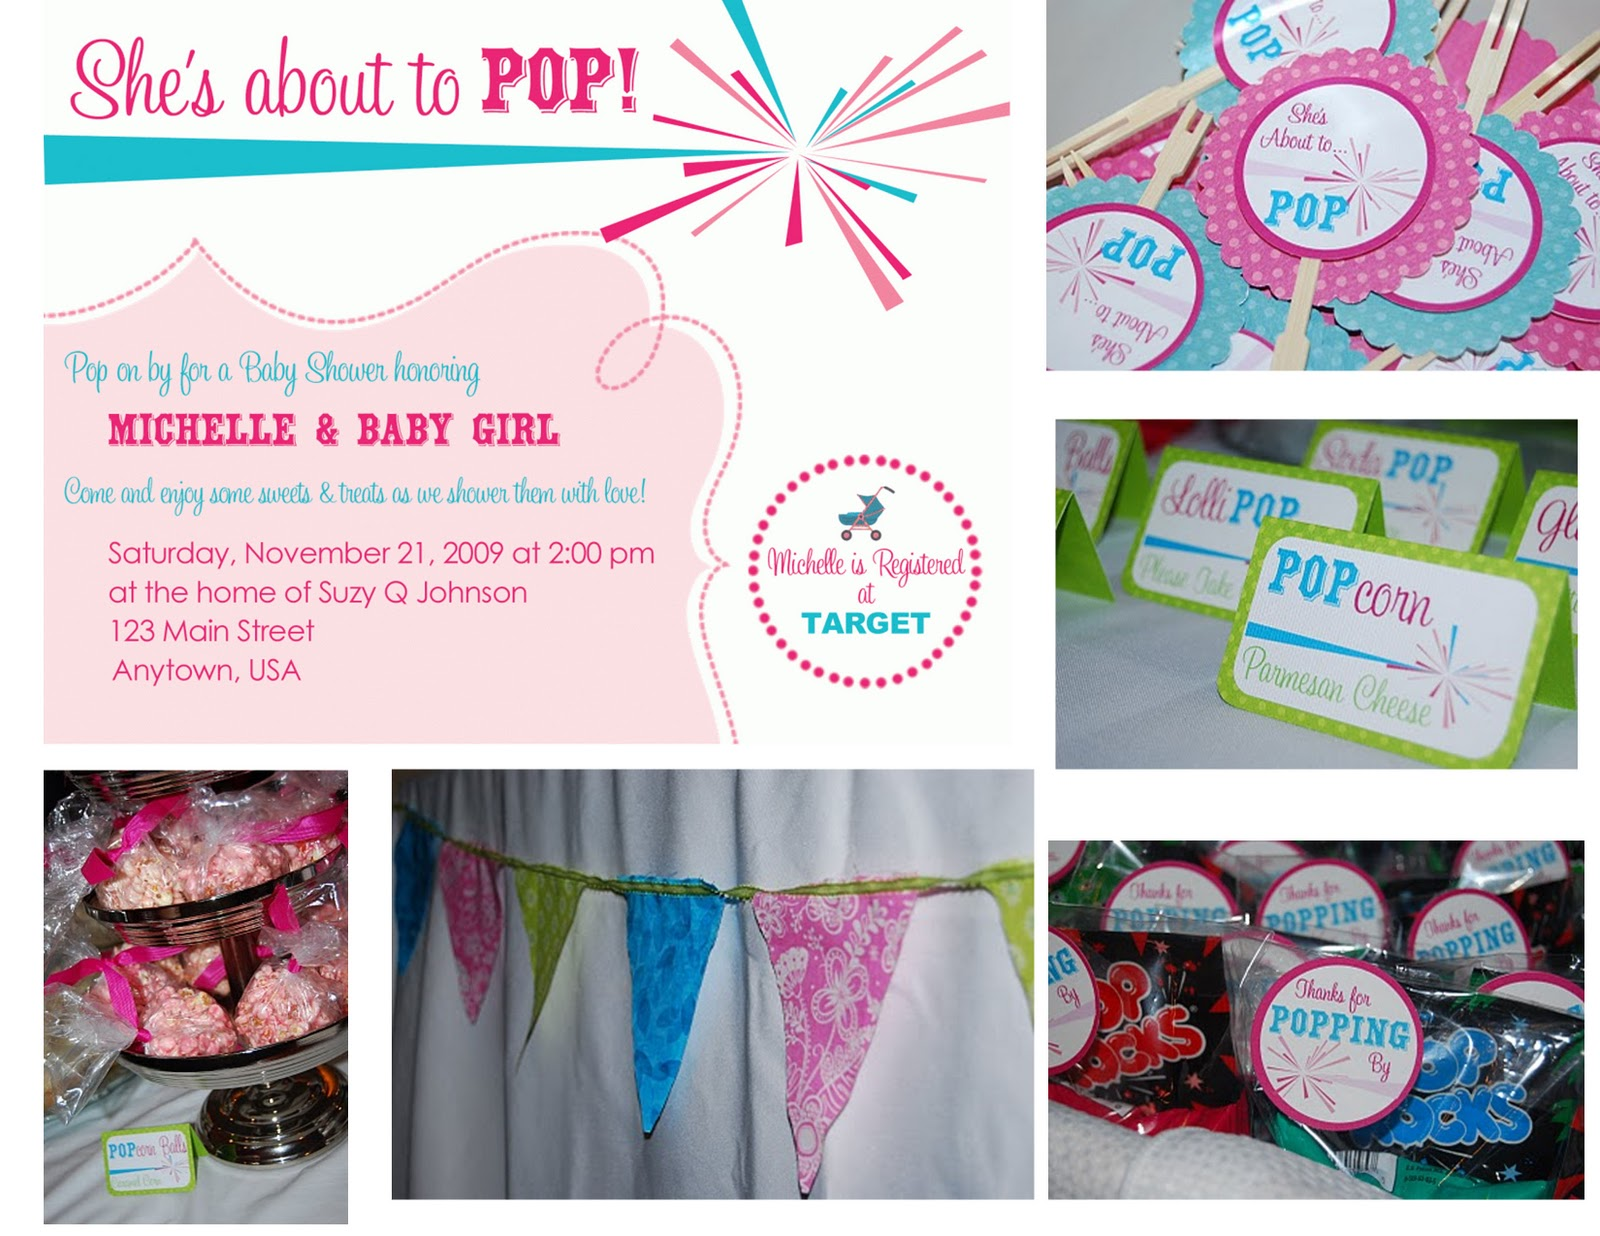 About To Pop Baby Shower Template | Party Invitations Ideas